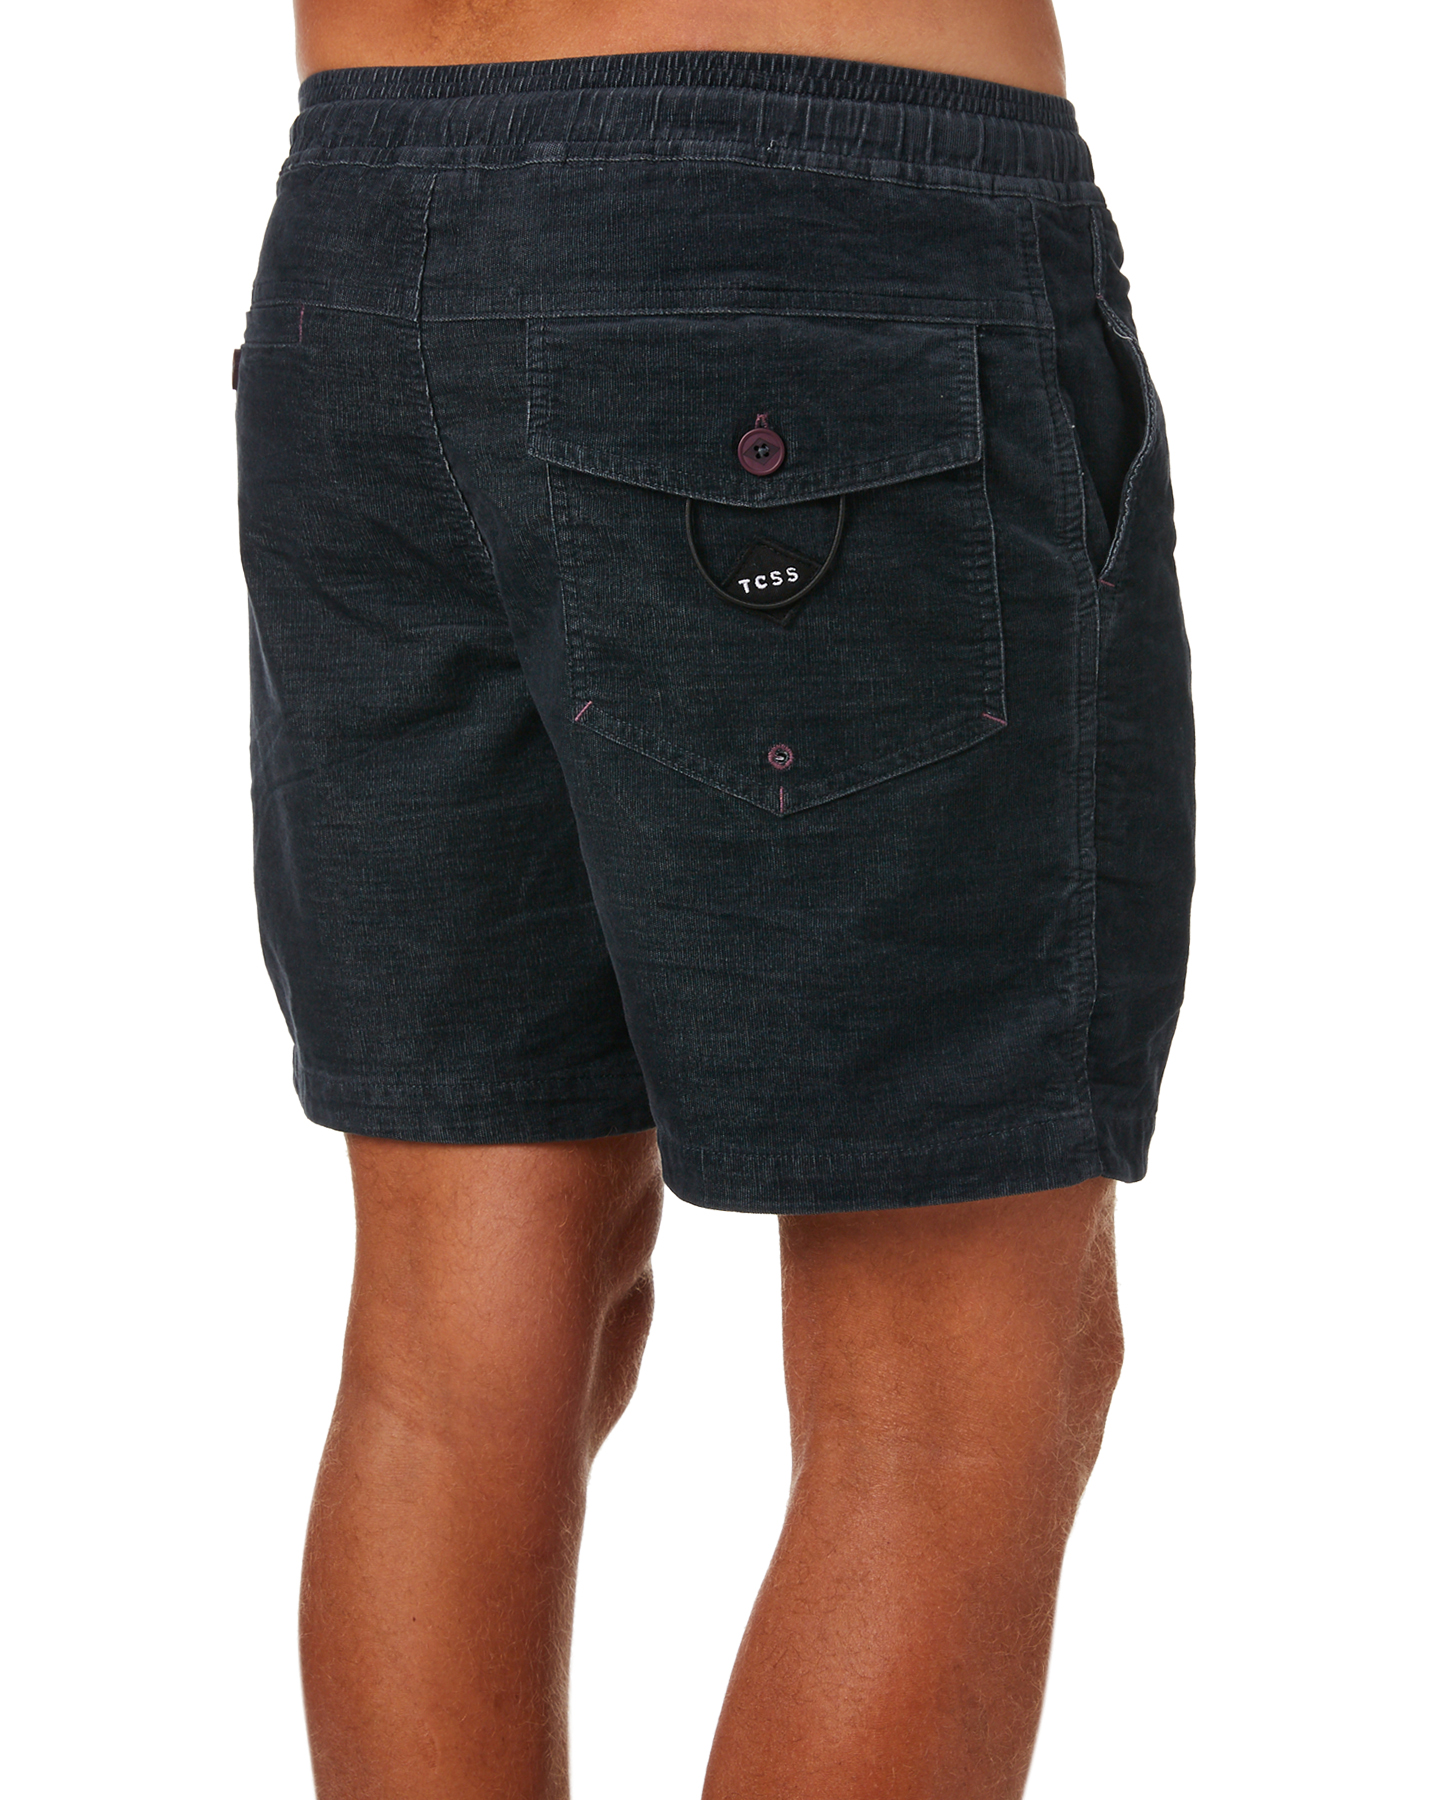 New-The-Critical-Slide-Society-Men-039-s-Honest-Mens-Cord-Short-Red